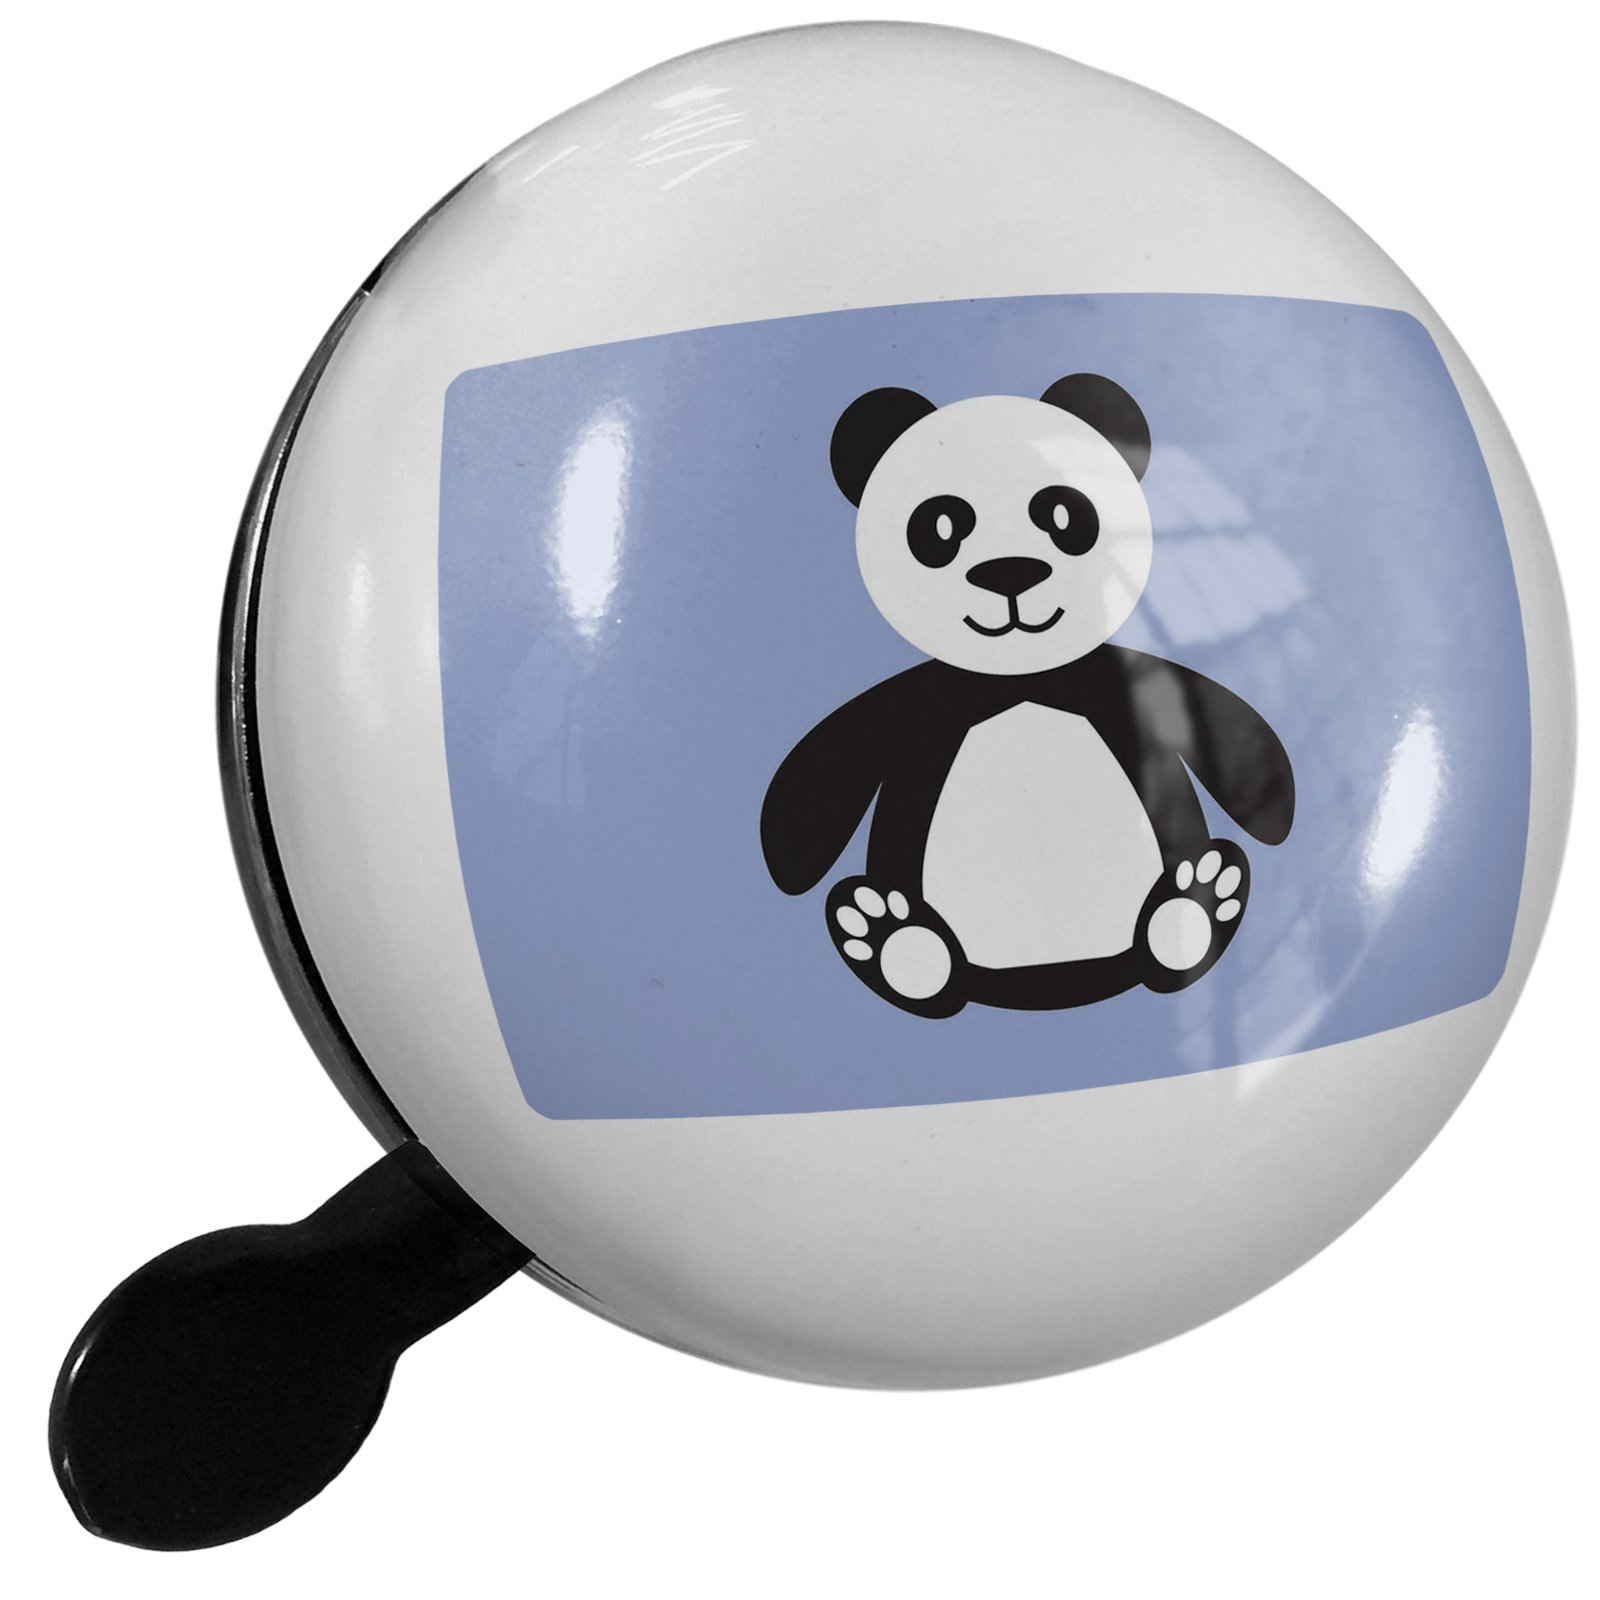 Small Bike Bell Cute Animals for Kids Panda Bear - NEONBLOND